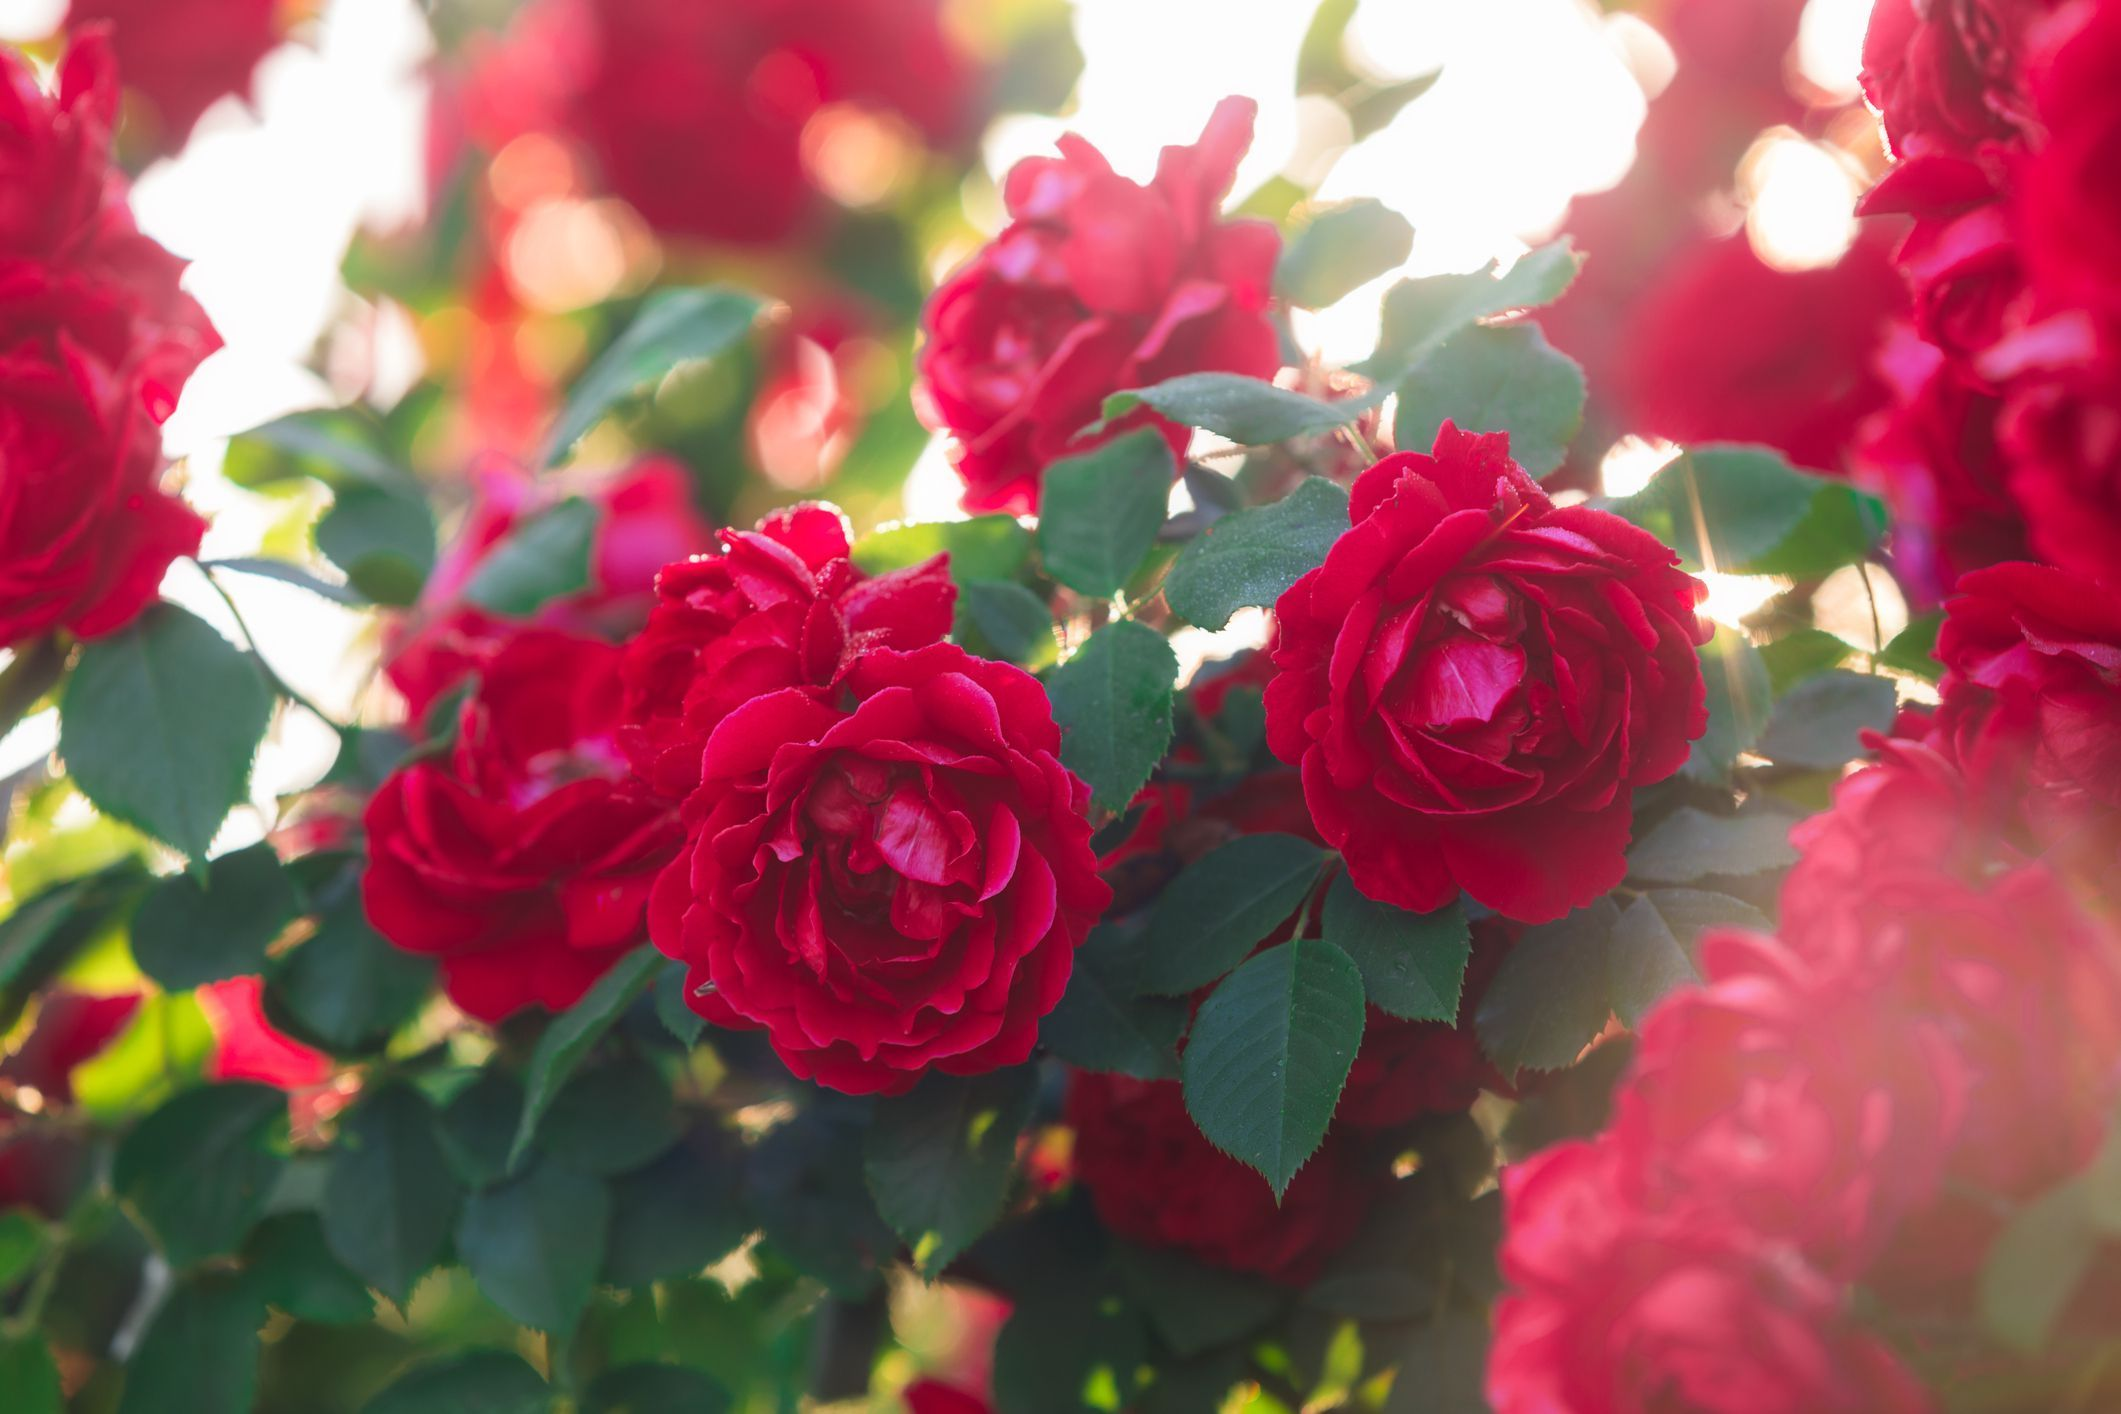 What S Wrong With My Roses The Top 10 Usual Suspects Planting Roses Black Spot On Roses Rose Diseases